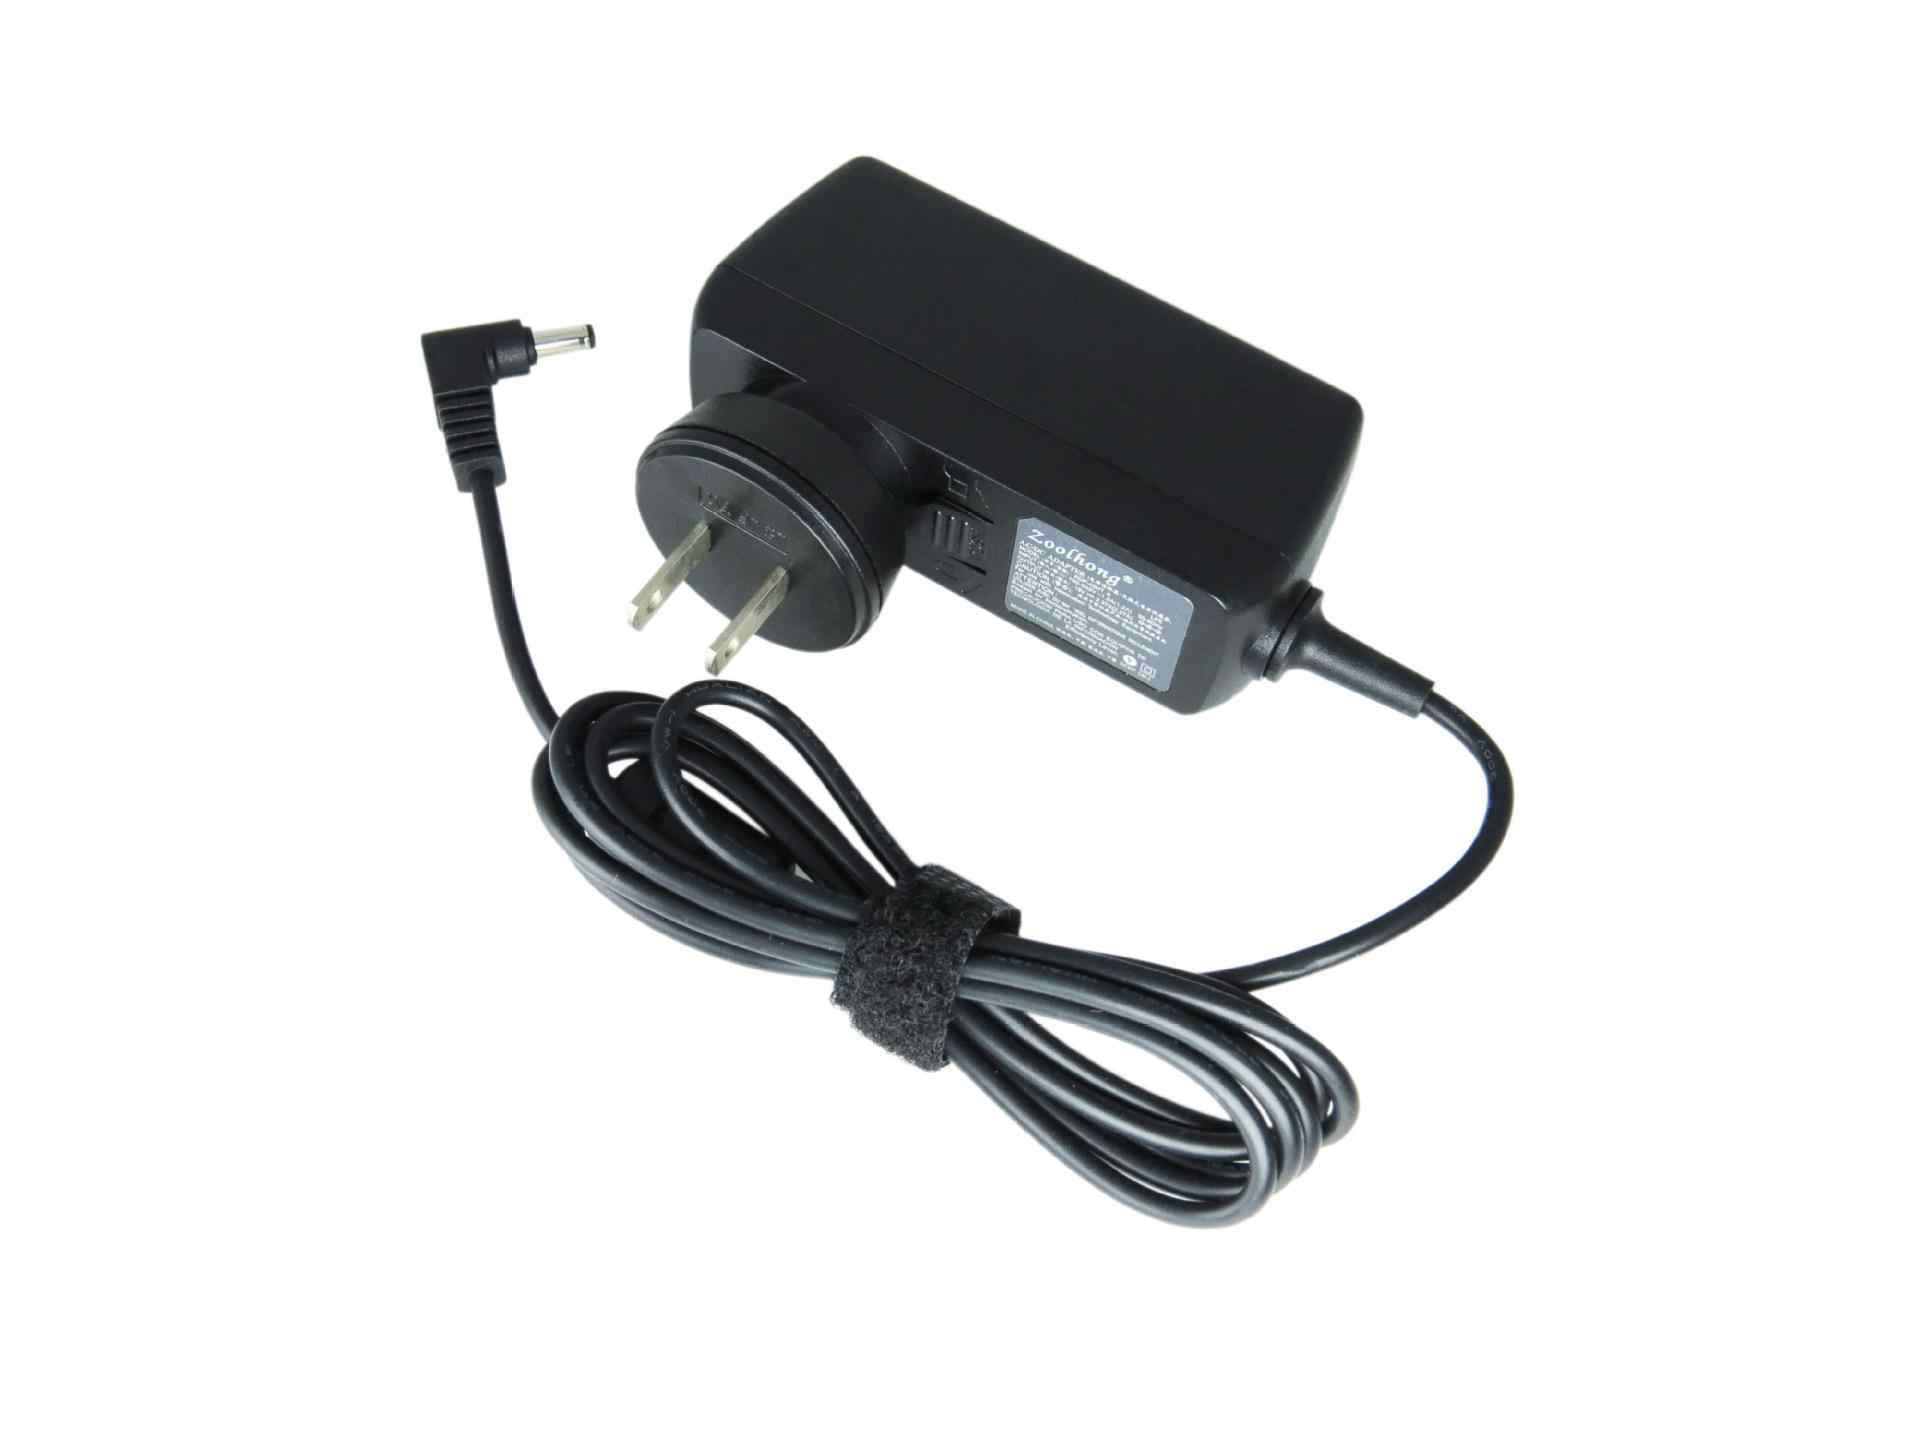 19V 1.75A 33W Laptop Ac Power Adapter Charger For Asus Vivobook S200 S200E S220 X200T X201E X202E F201E Q200E Us/Eu/Uk Plug